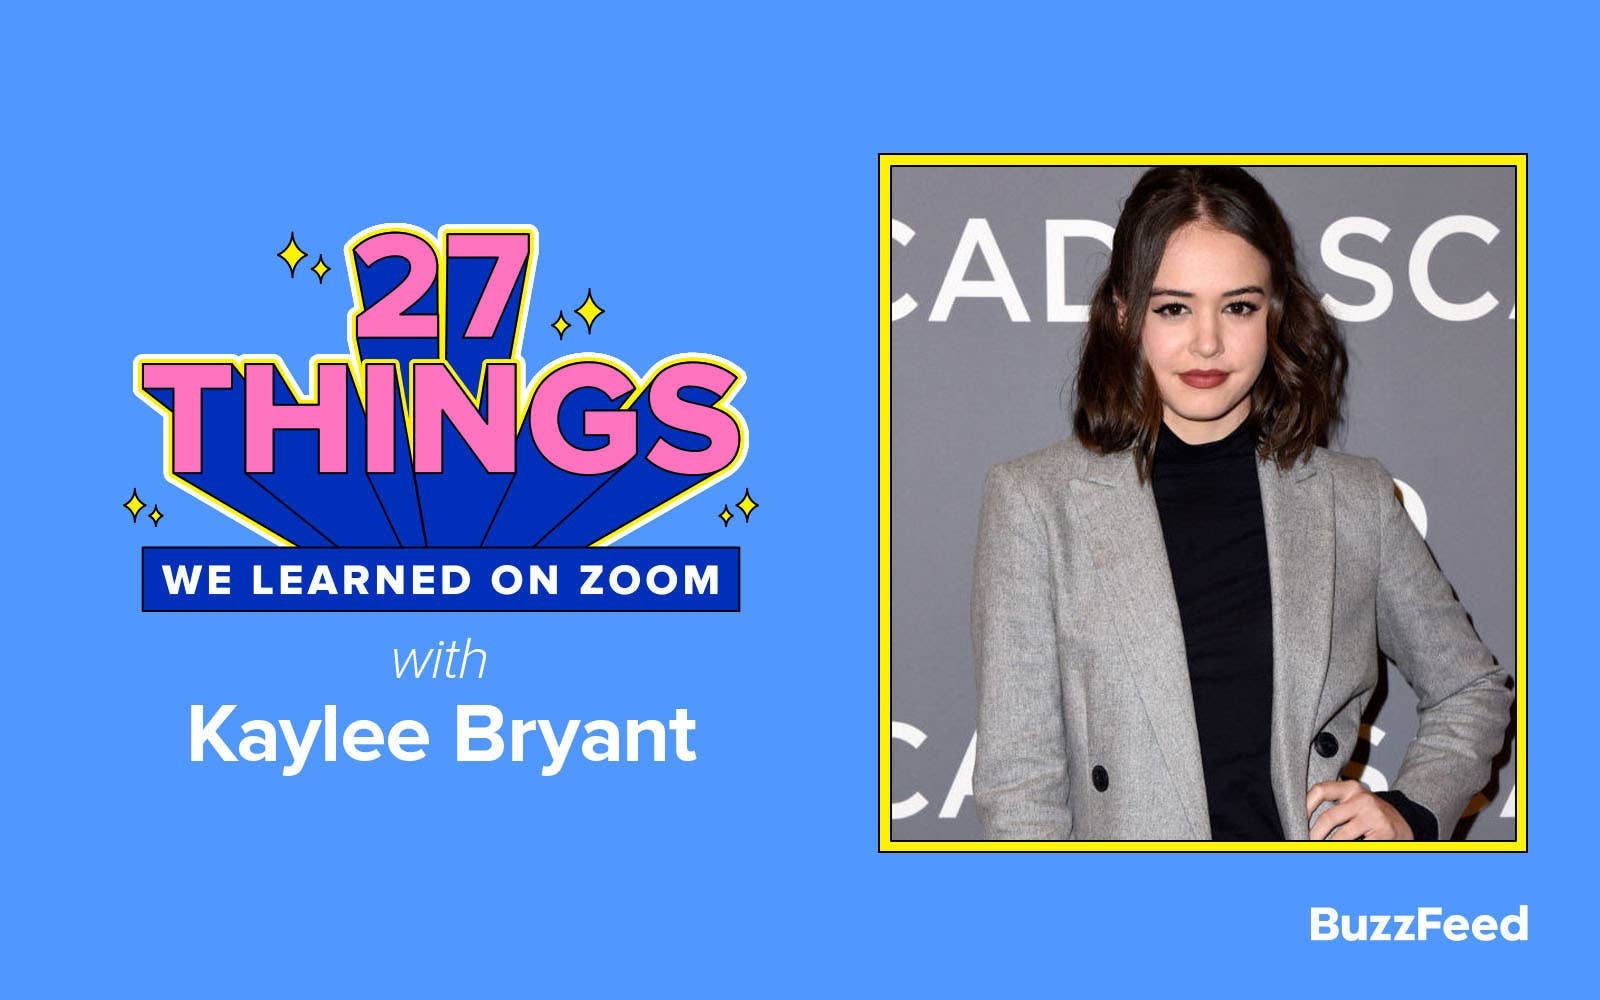 27 things we learned on Zoom with Kaylee Bryant